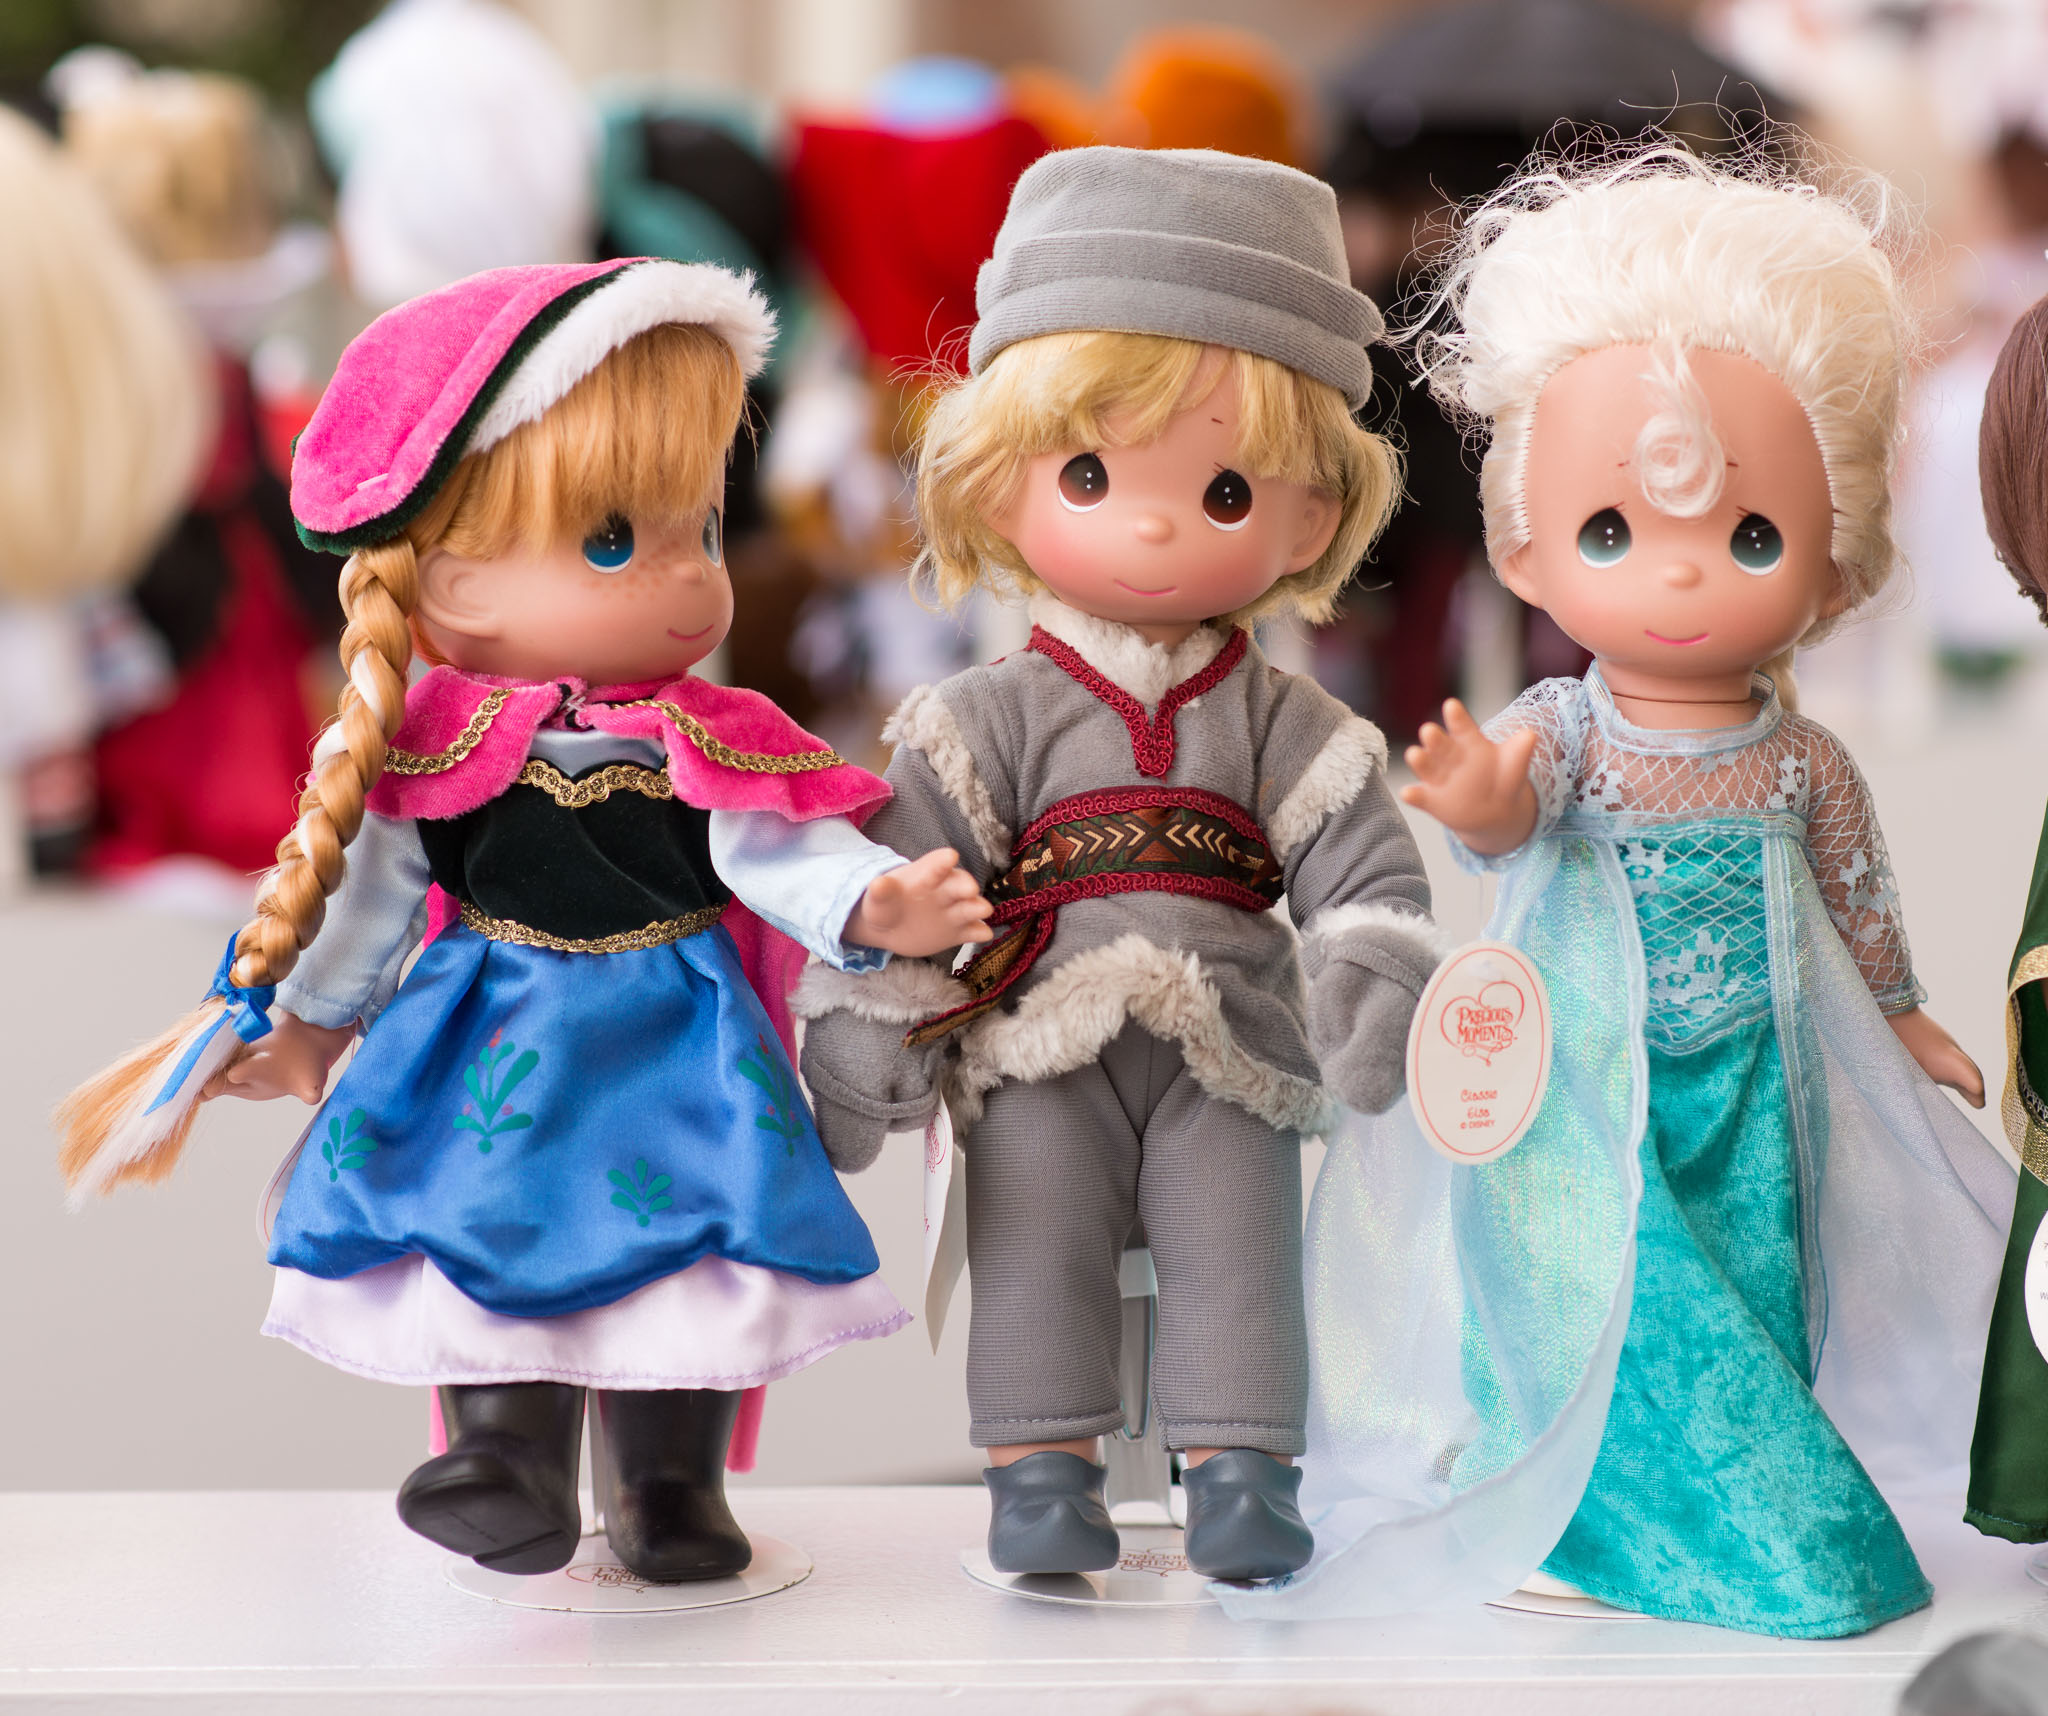 Precious Moments Disney Doll Collection - Anna, Kristoff, and Elsa from Frozen - Epcot Flower & Garden Festival 2016